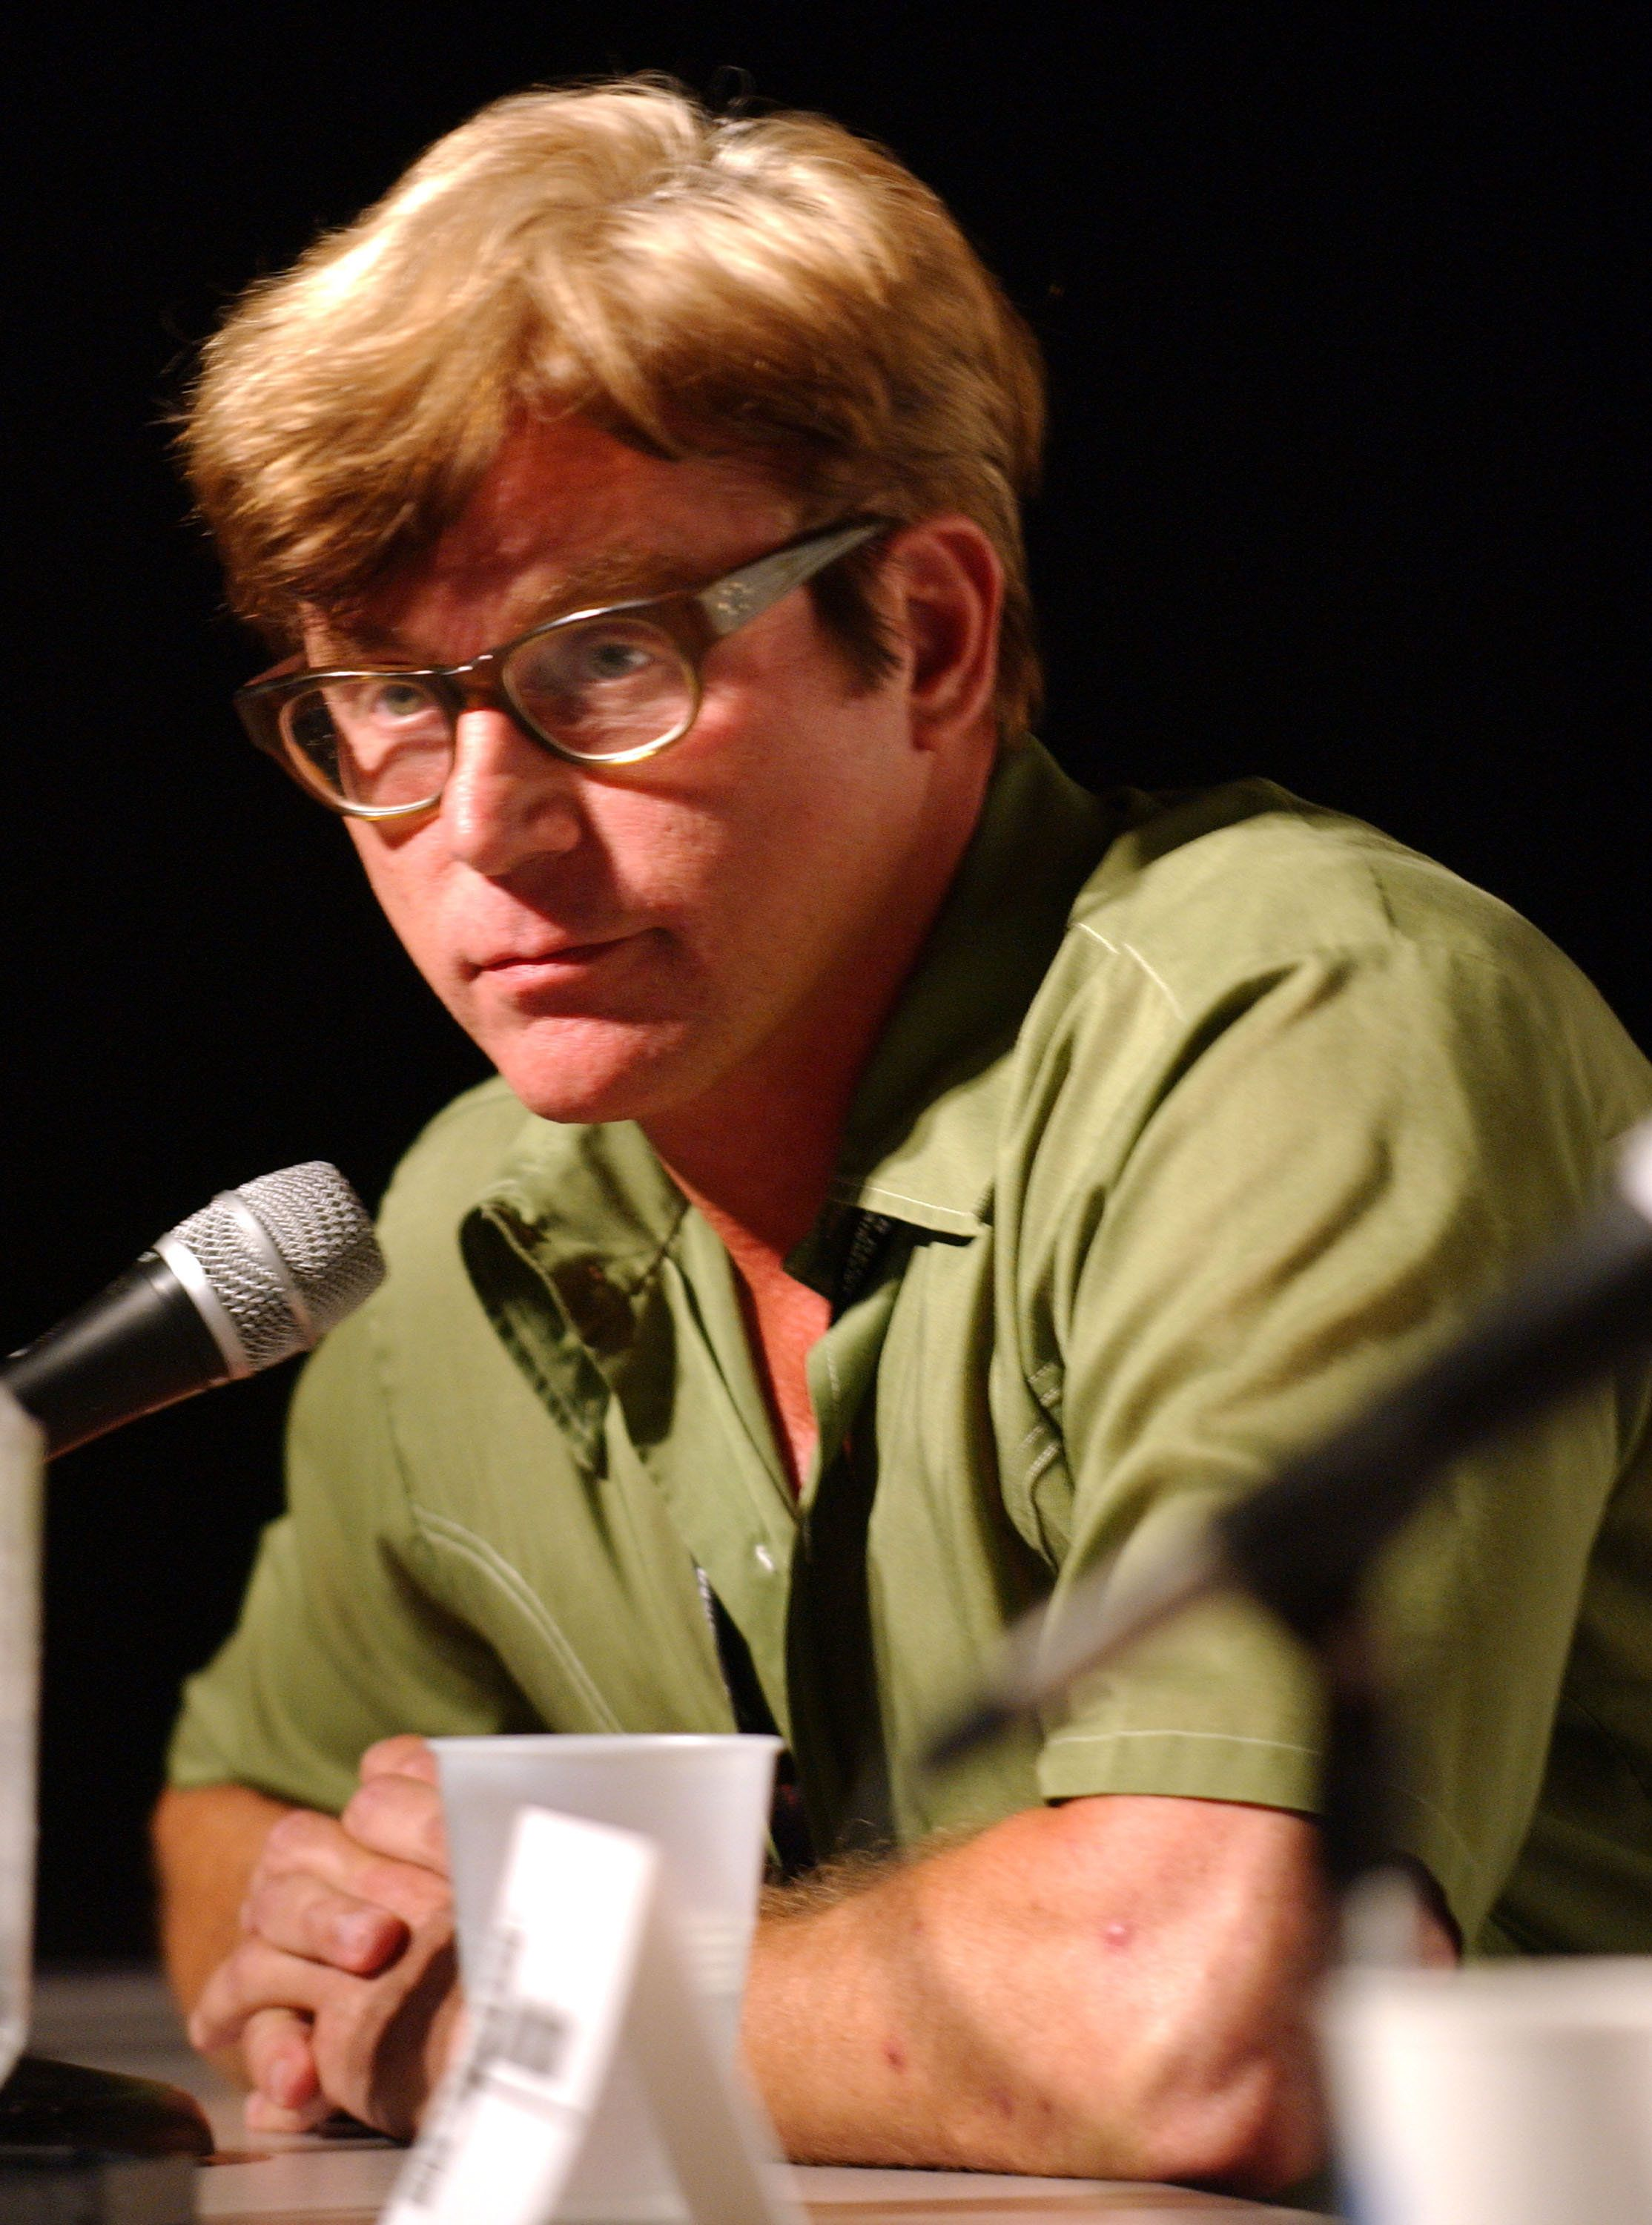 John Kricfalusi at the San Diego Convention Center in San Diego, CA (Photo by Albert L. Ortega/WireImage)